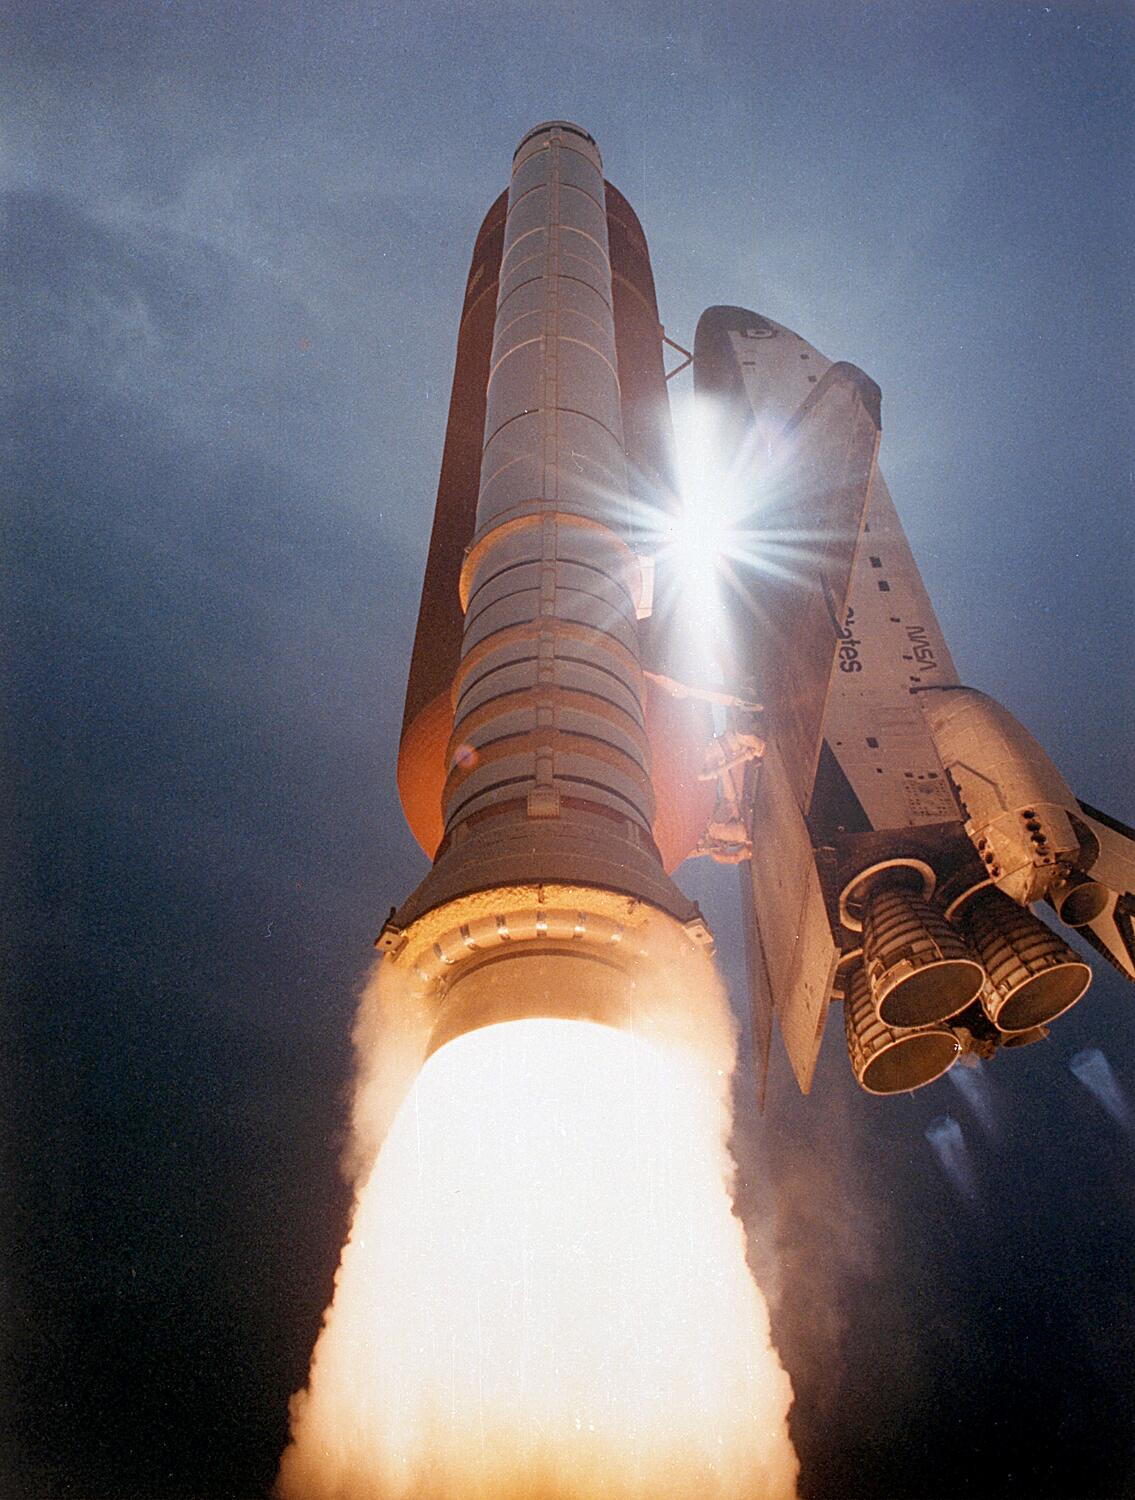 On the 6th day of Christmas, NASA History gave to me 6 Space Shuttles Flying.   http://t.co/GsOGPE8rfY